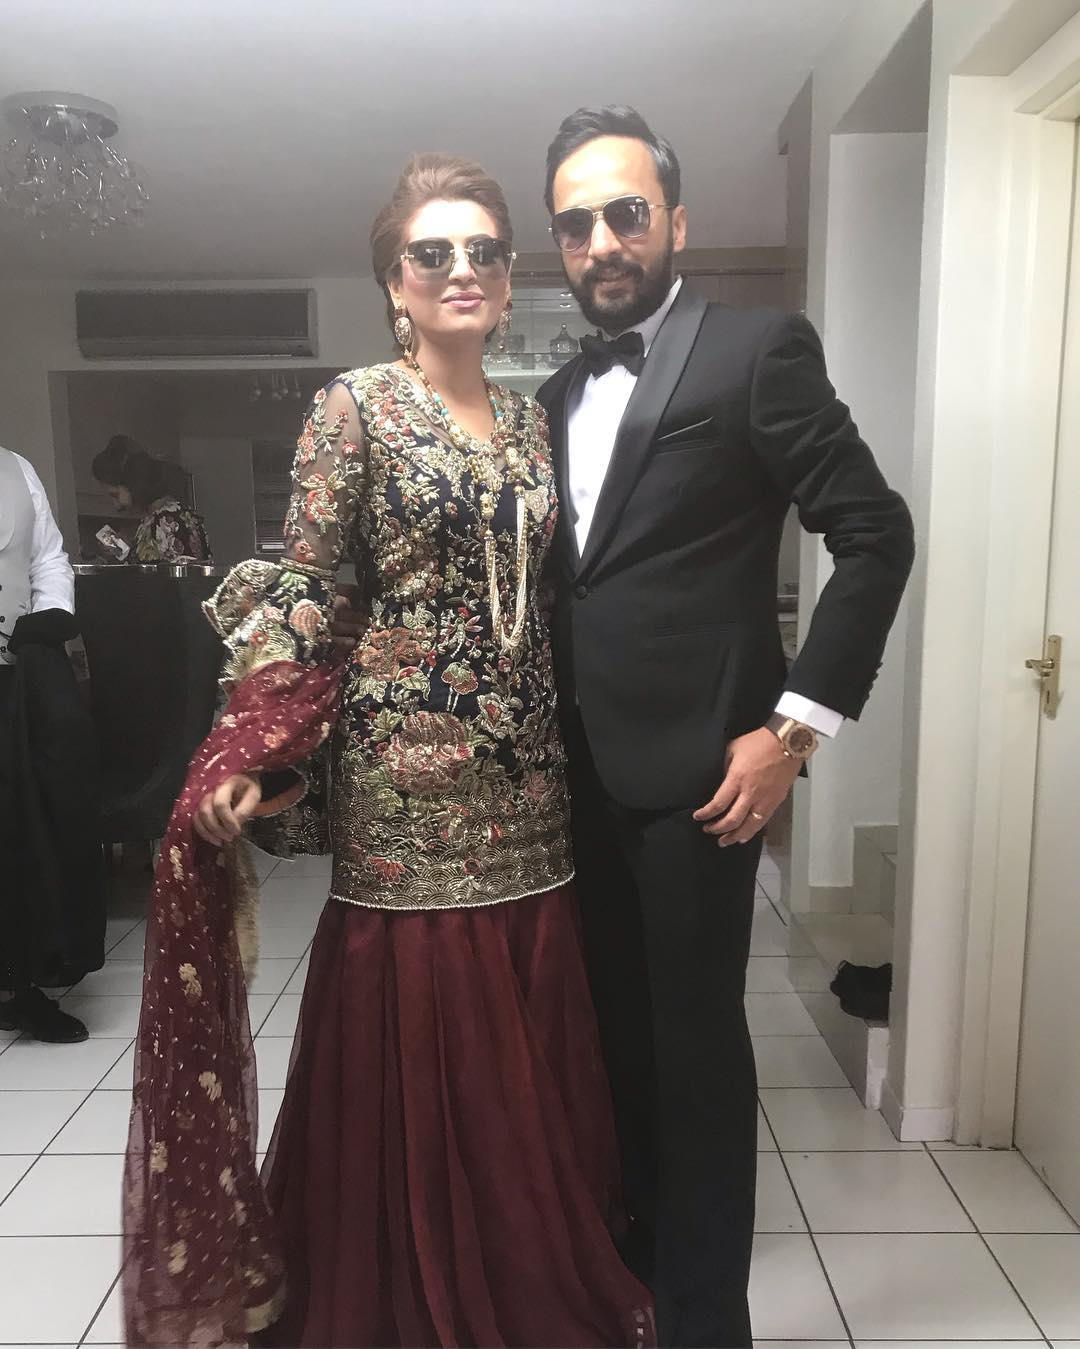 Benita David with her Husband at a Wedding Event in South Africa